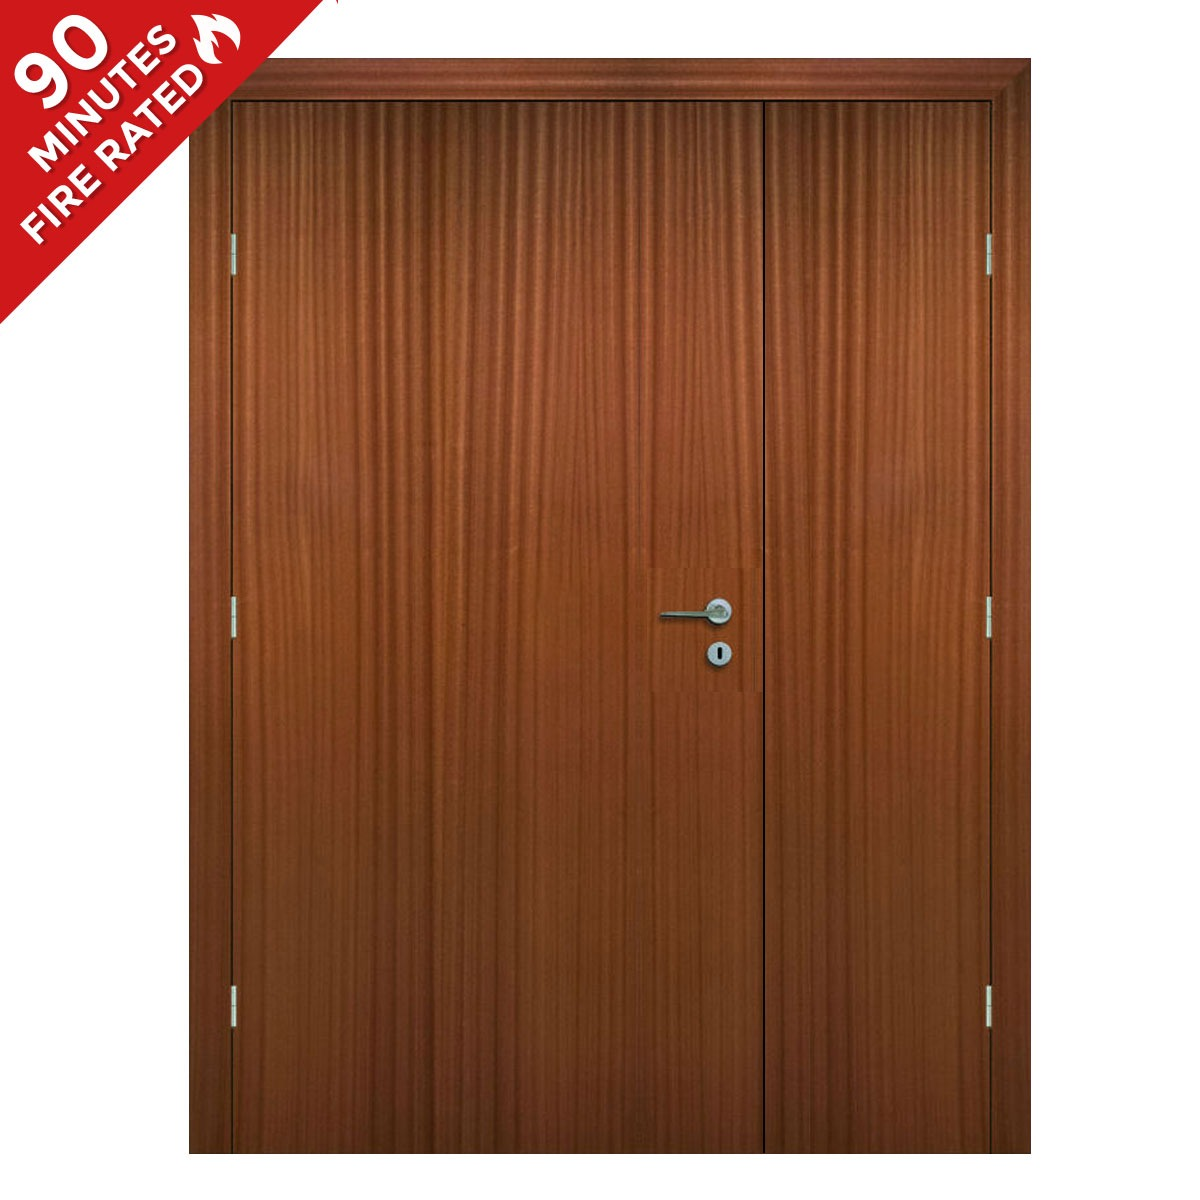 Sapele Hospital Door FD90